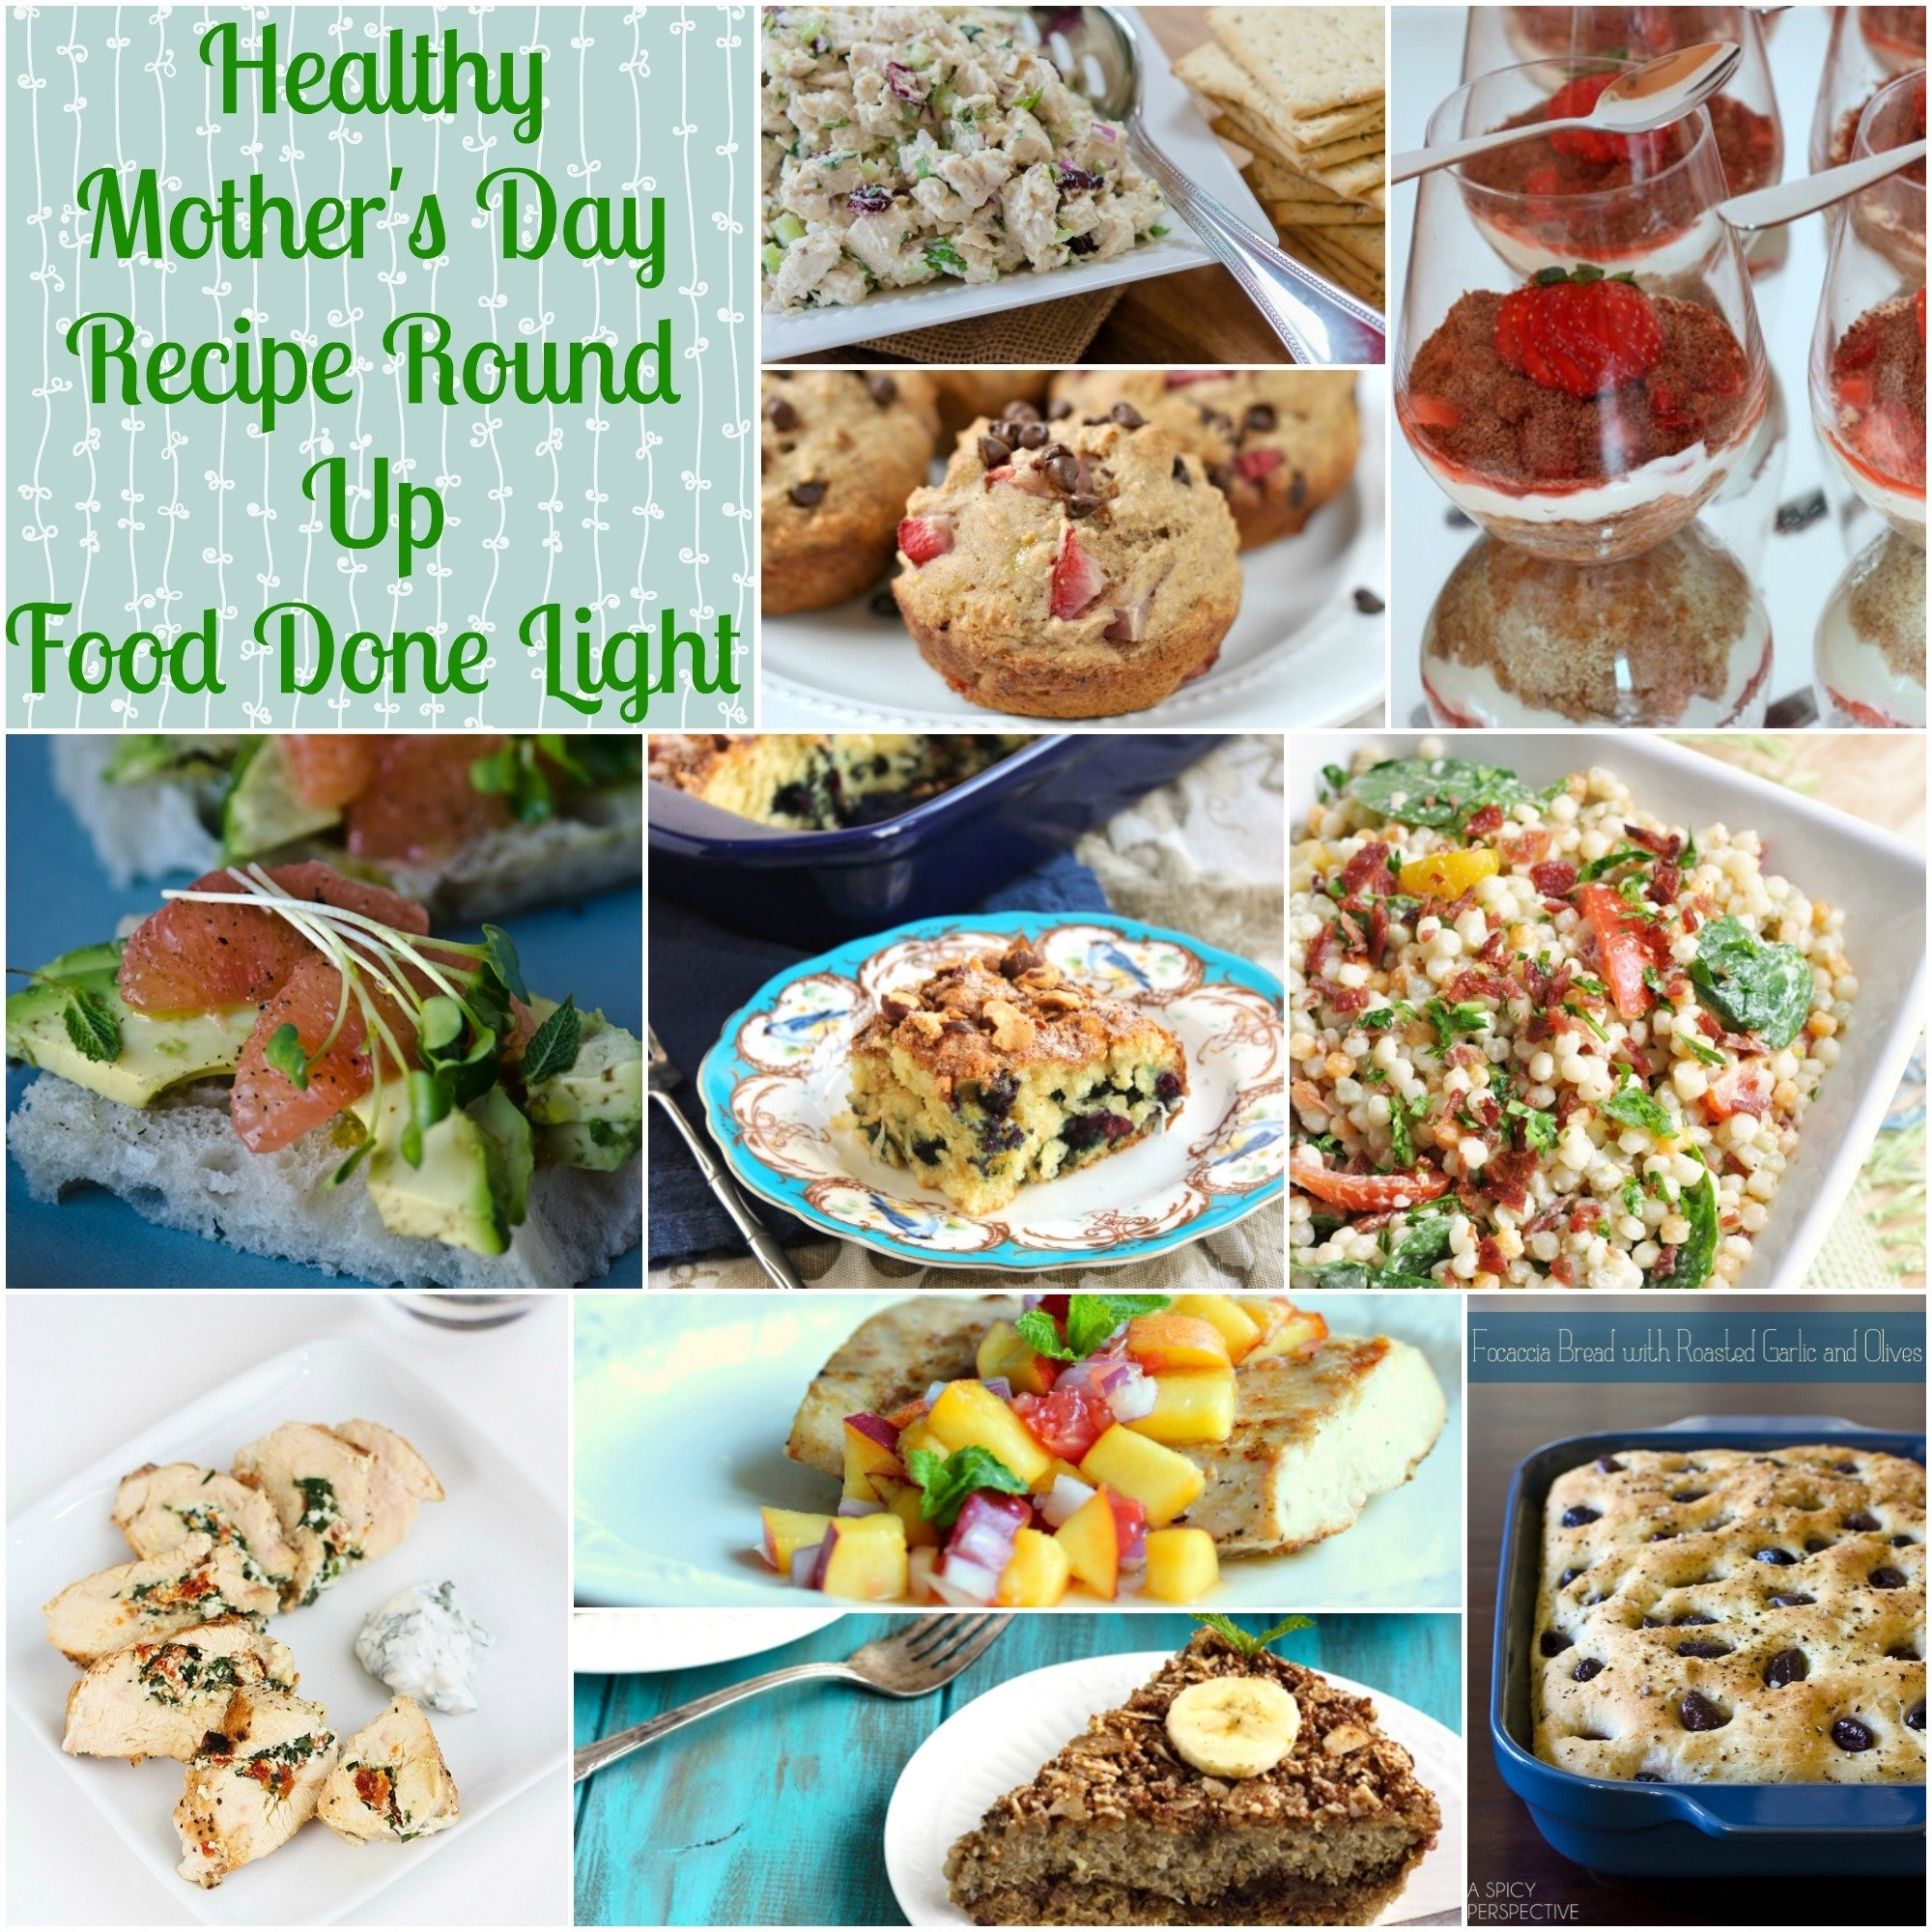 10 Unique Mothers Day Brunch Menu Ideas healthy mothers day recipe round up food done light 1 2021